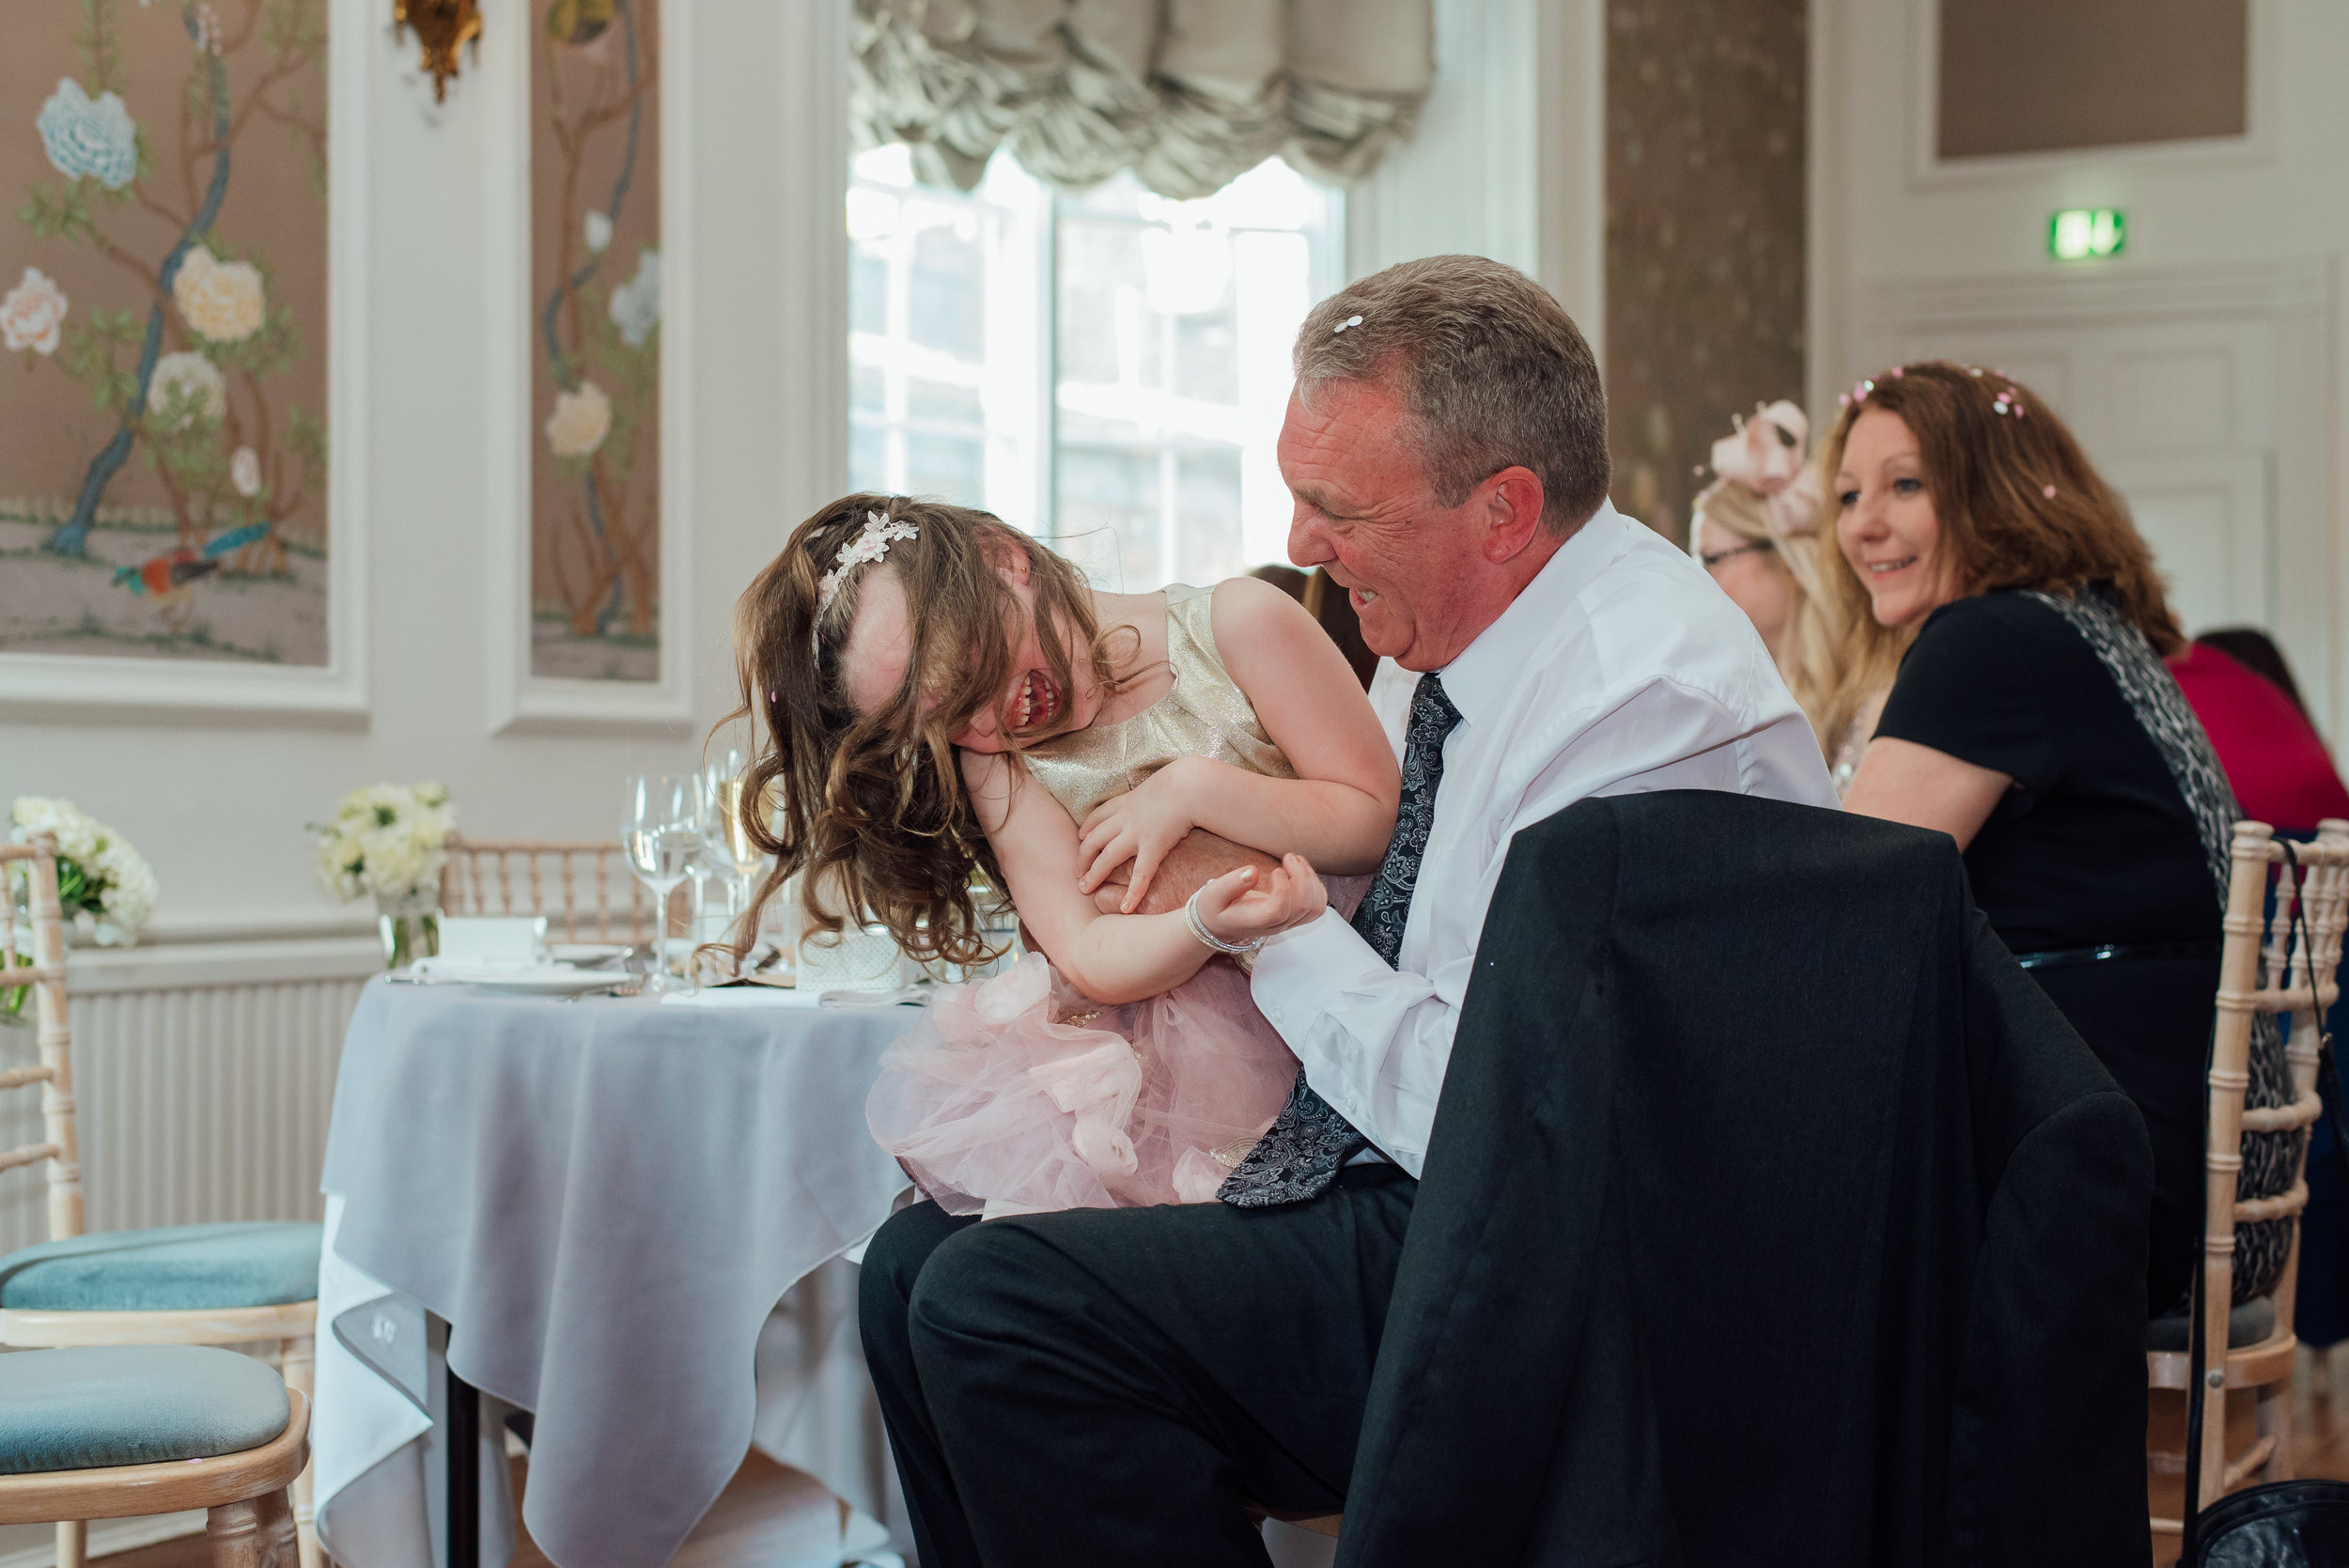 George in Rye Wedding by Amy James photography - Wedding Photographer Hampshire Surrey and Berkshire